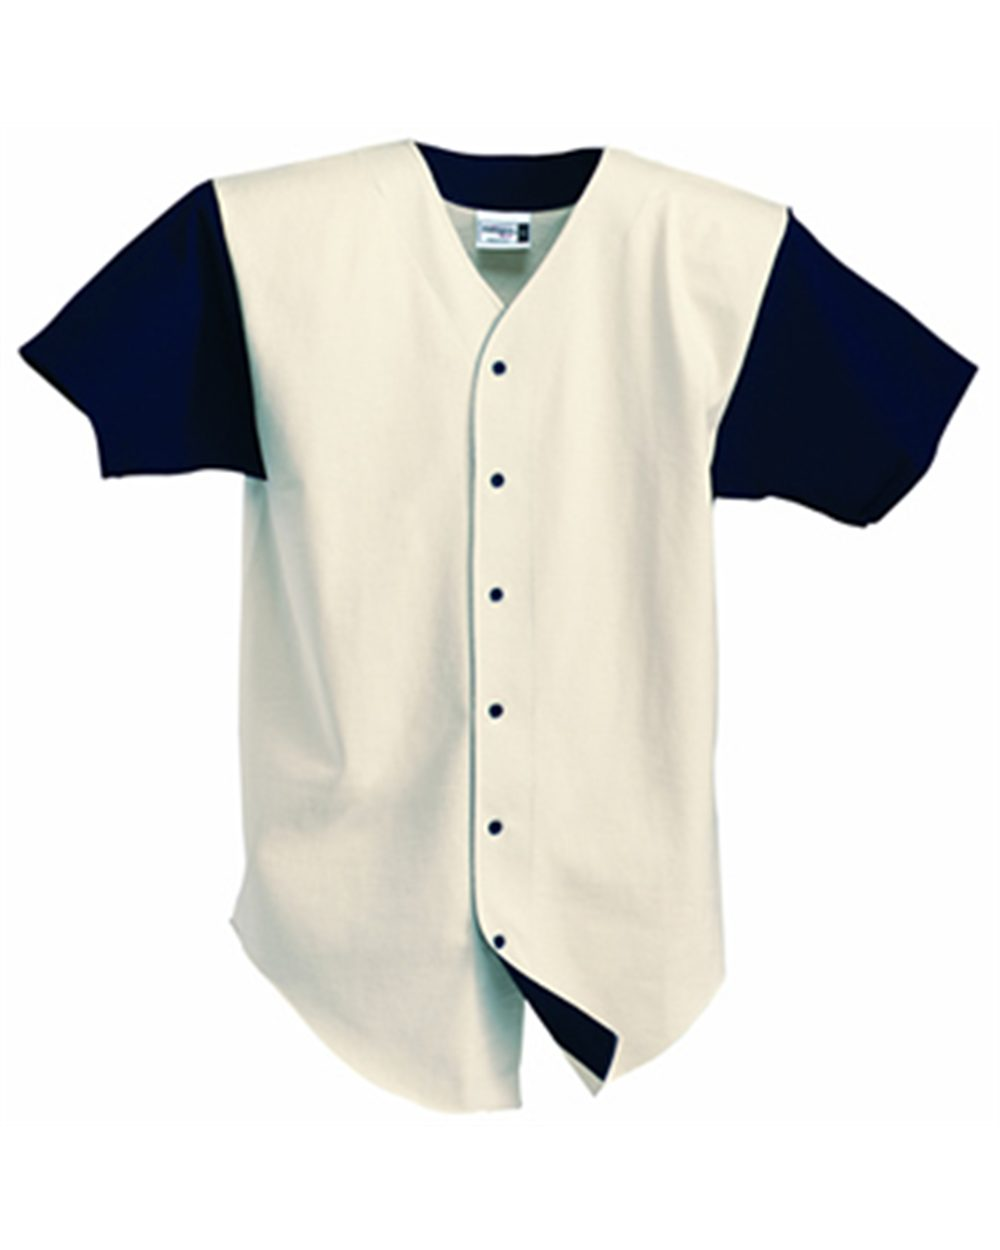 hot sale baseball uniforms custom sublimation baseball jersey mesh baseball jersey